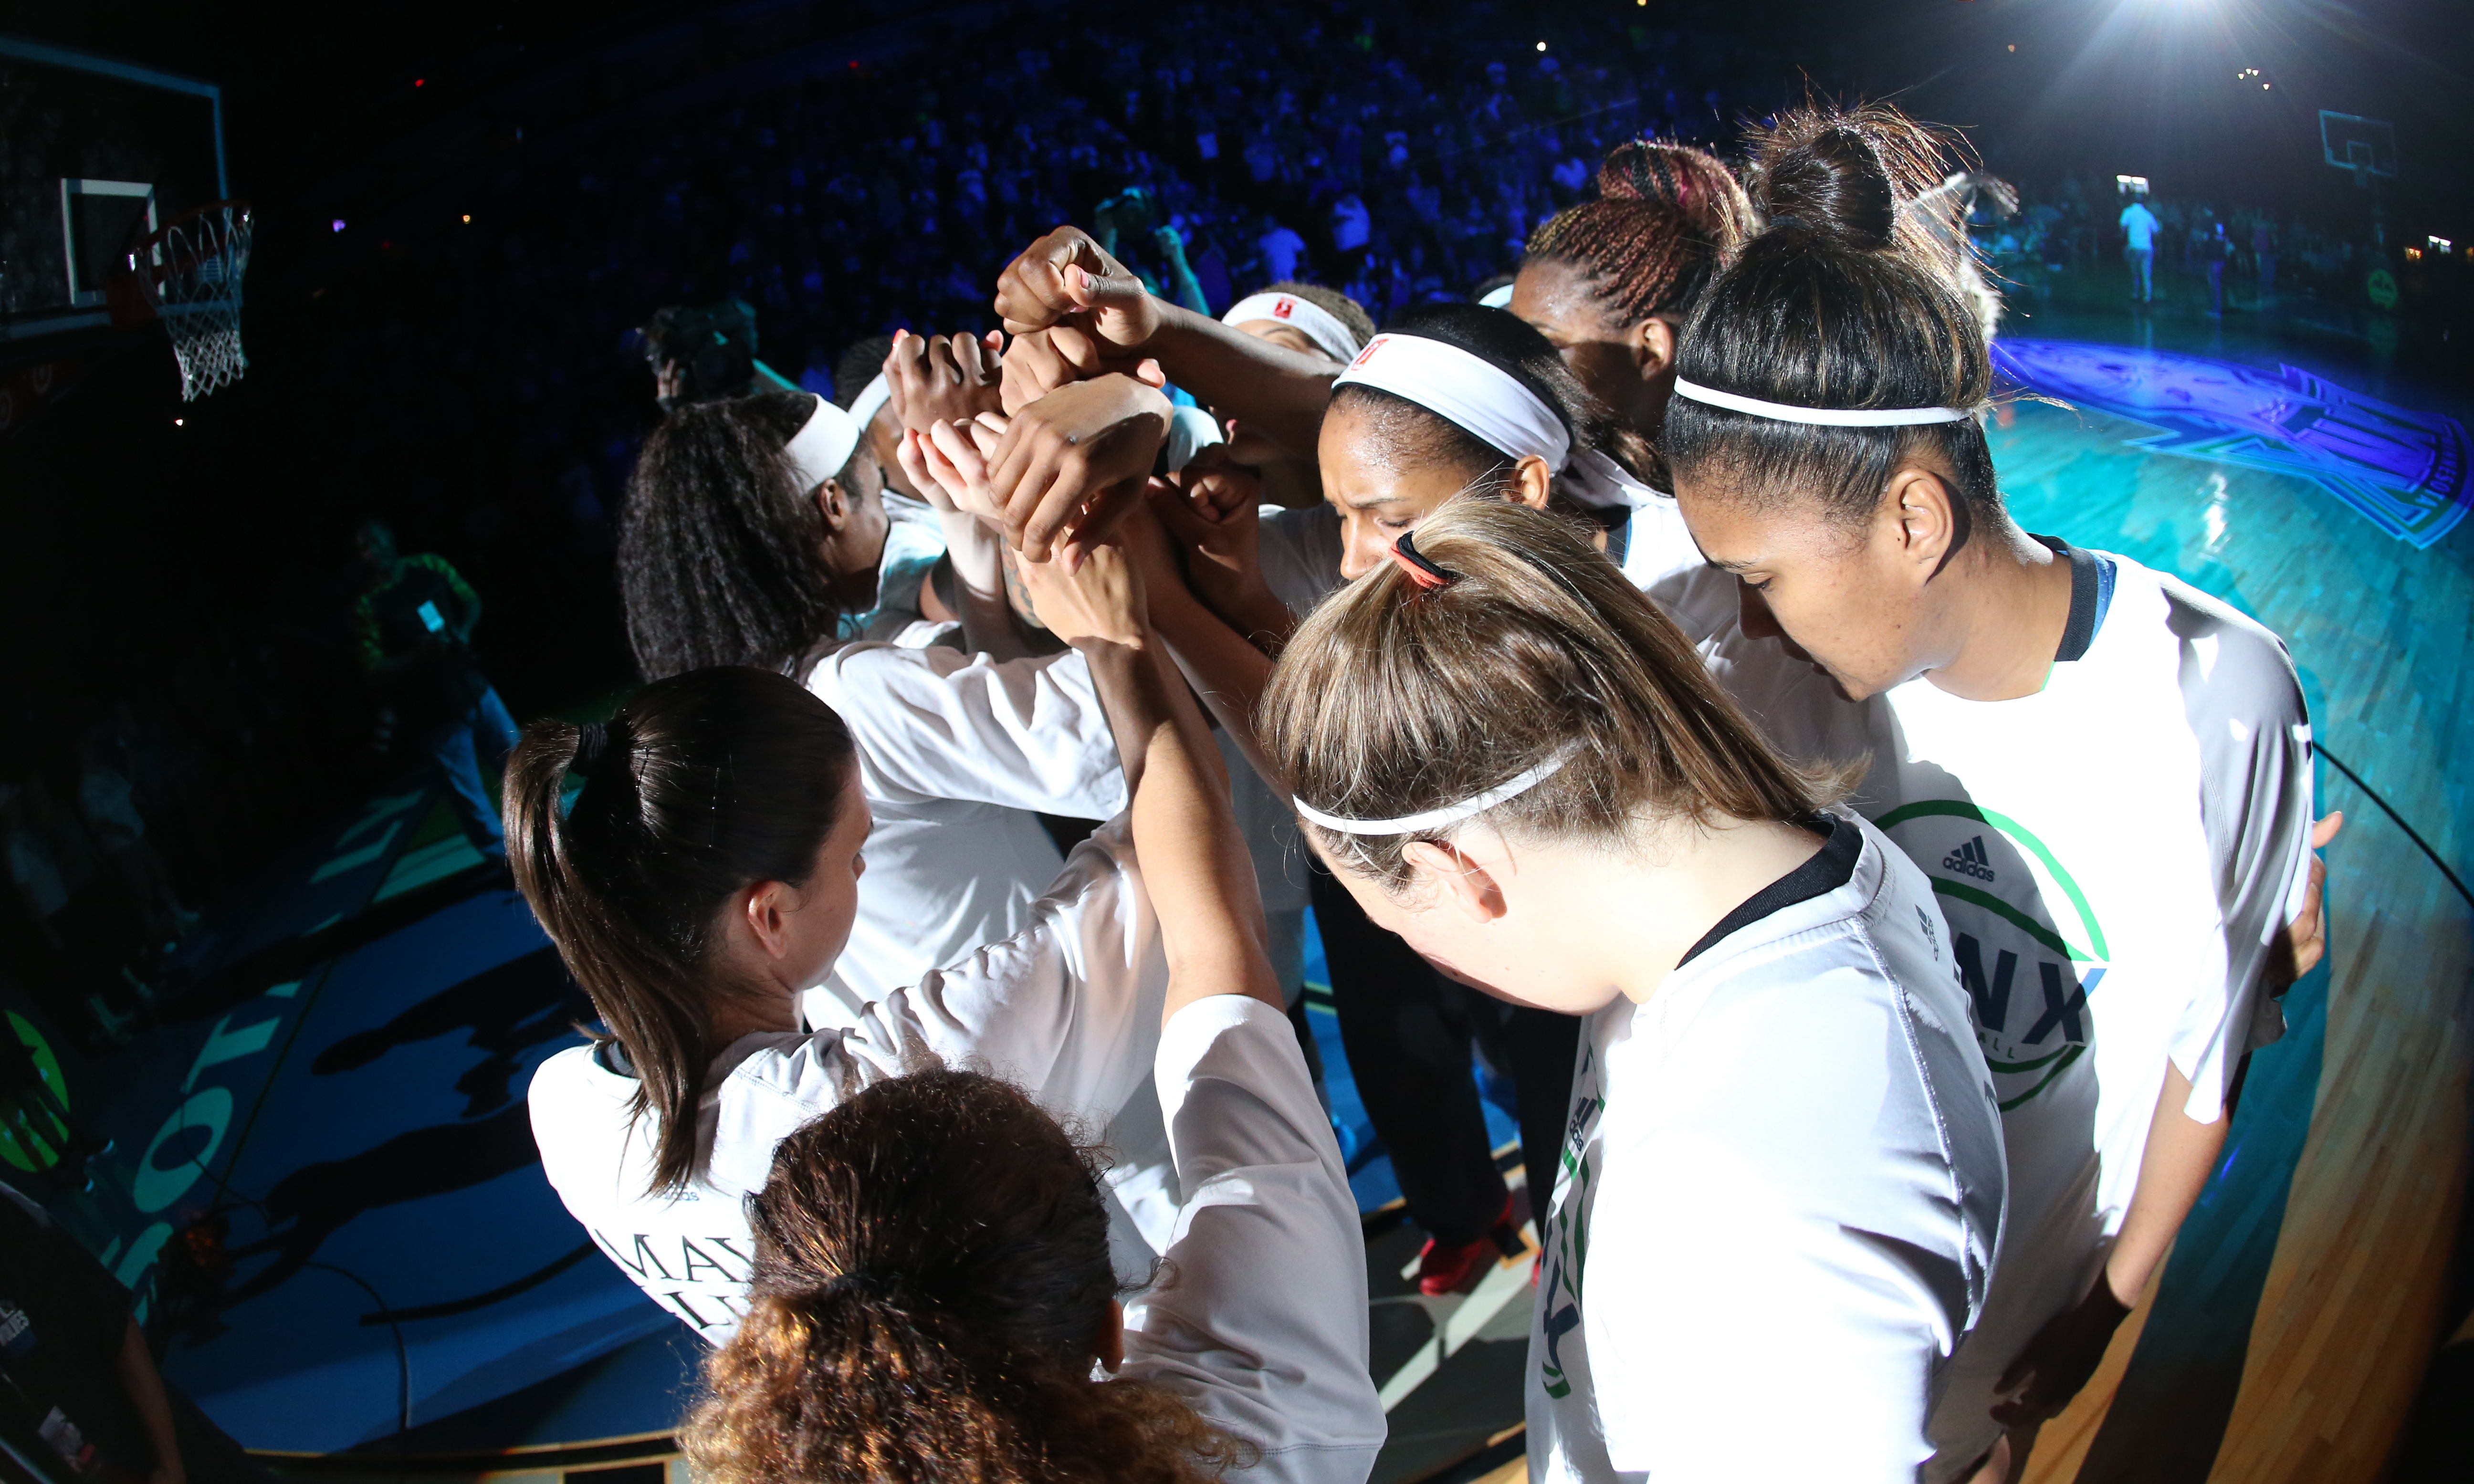 After last night's 66-49 victory, the Lynx have now won 11 straight games at Target Center against the Stars and have won 19 of the past 22 regular-season meetings against San Antonio.